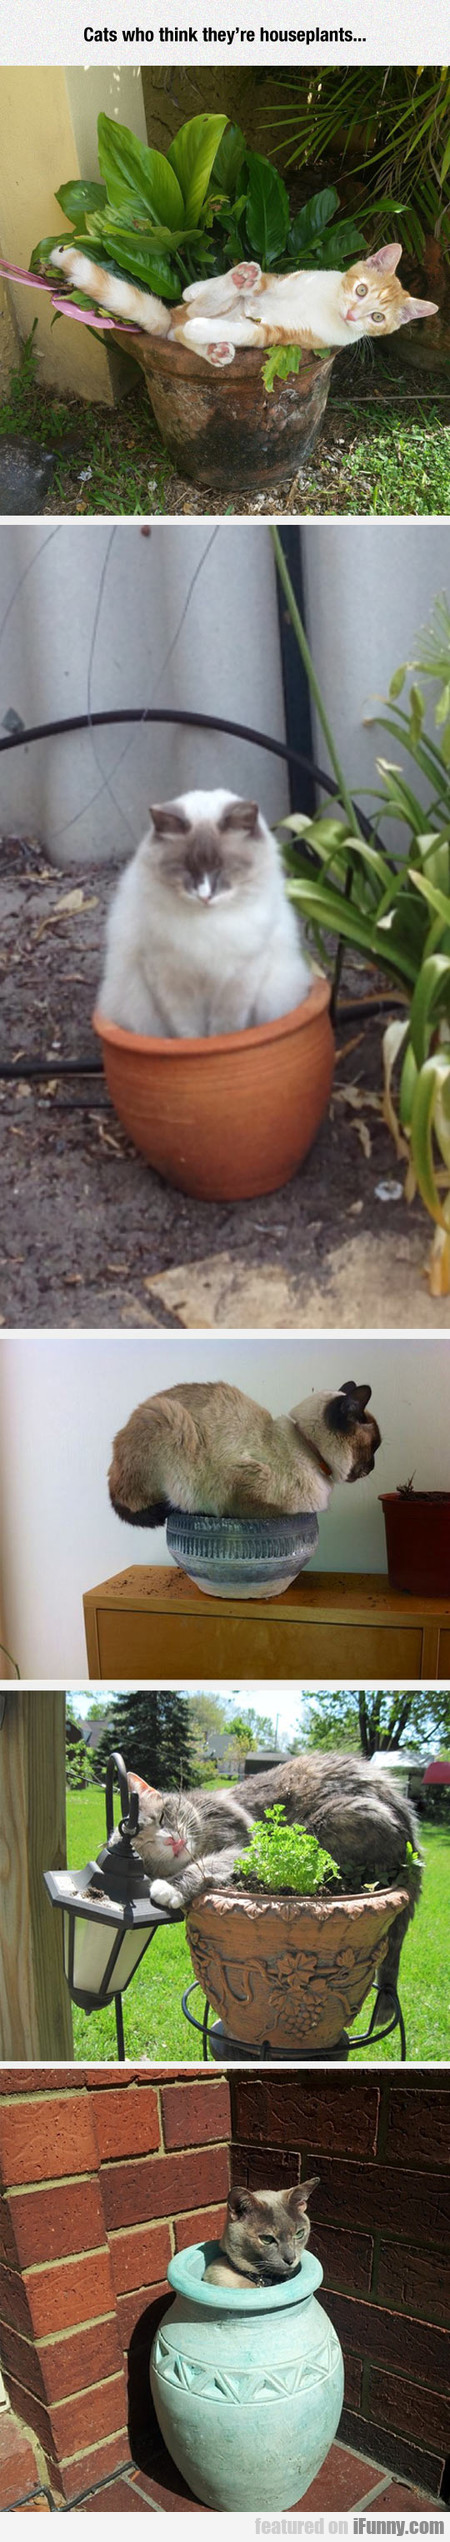 Cats who think they're houseplants...